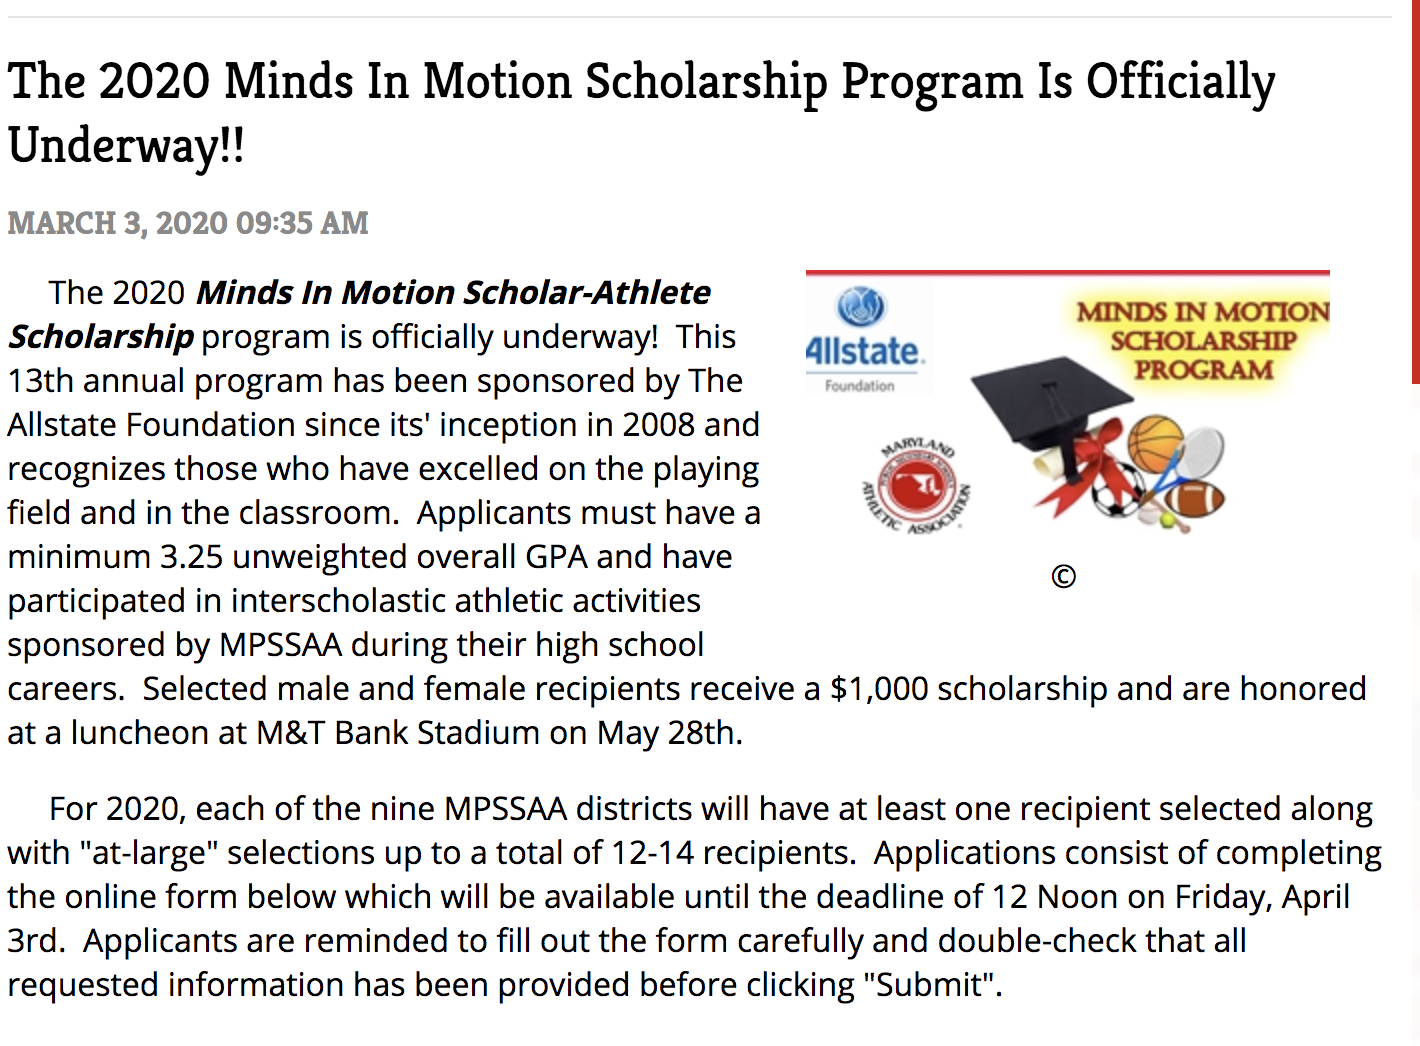 SENIORS APPLY FOR Minds in Motion Scholarship